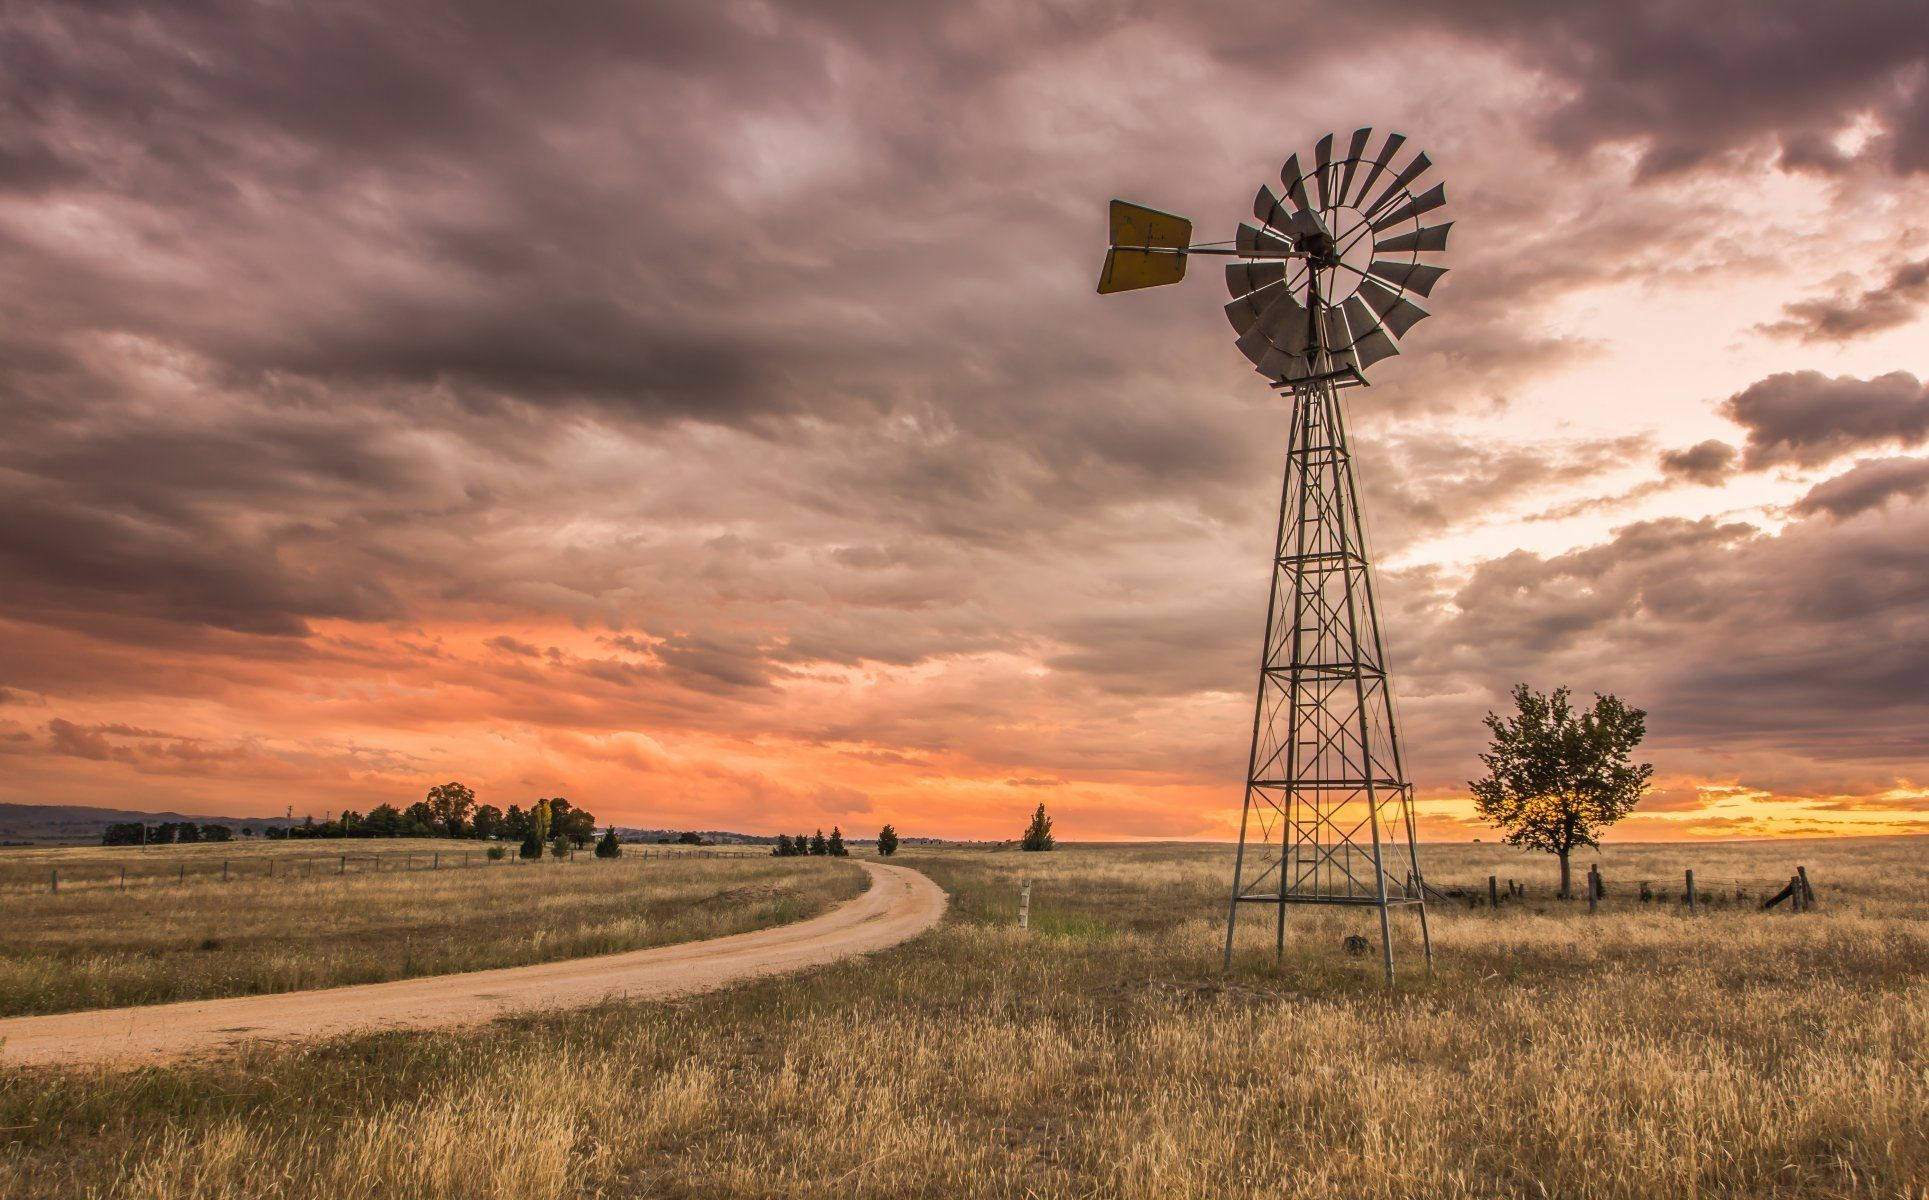 Spinning Wheel Country Australia Oconnell Rd Brewongle New South Windmill Landscaping Landscape Wallpaper Wallpaper